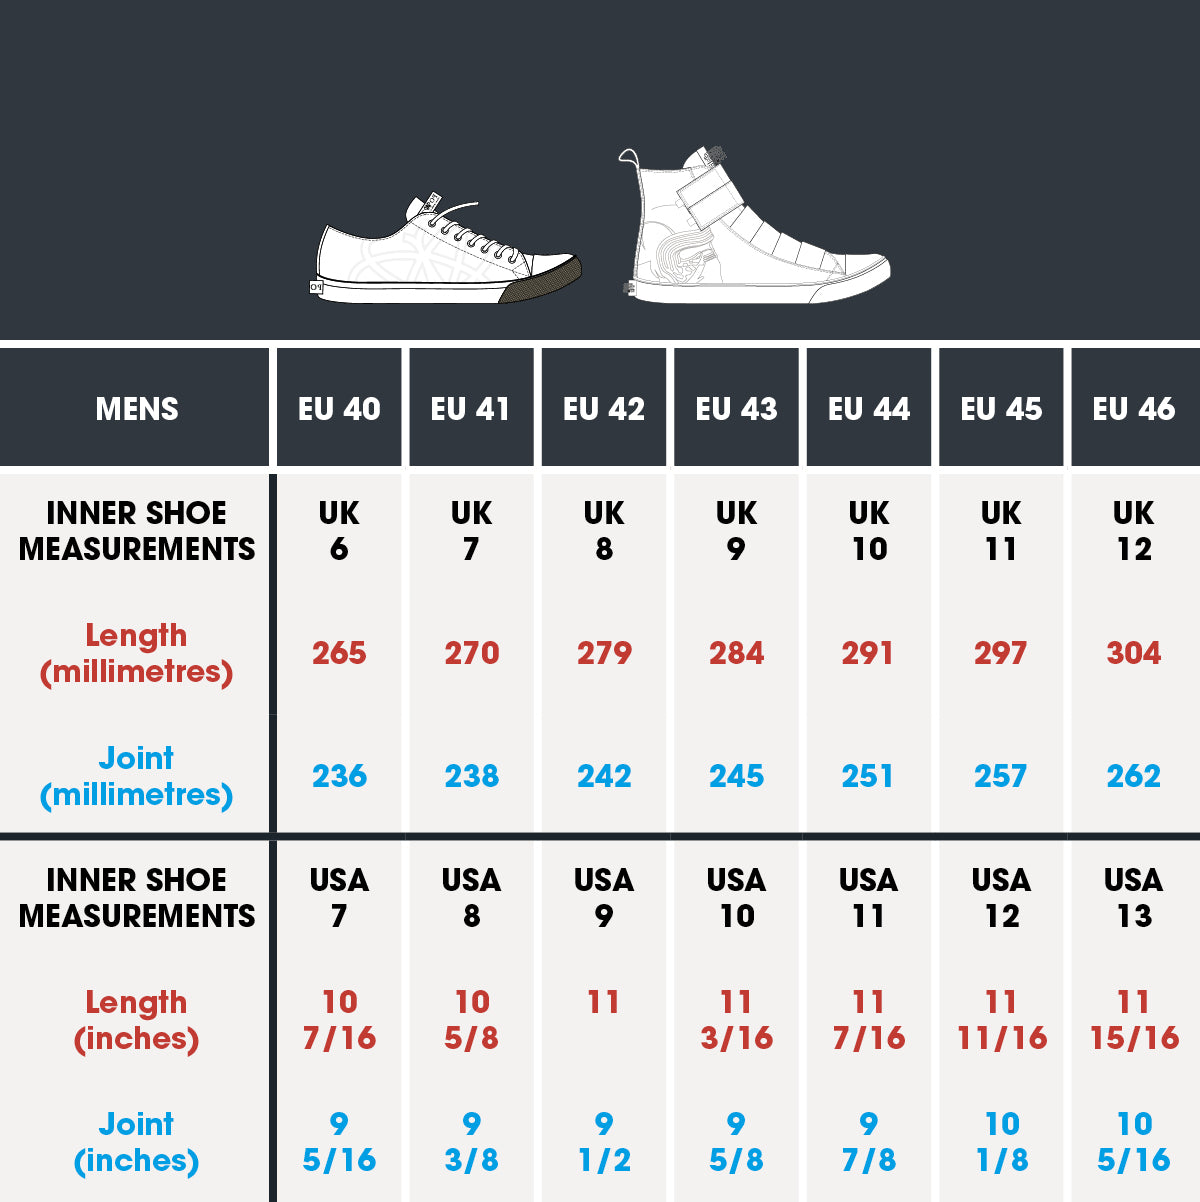 po-zu men's vulcanised sole size chart